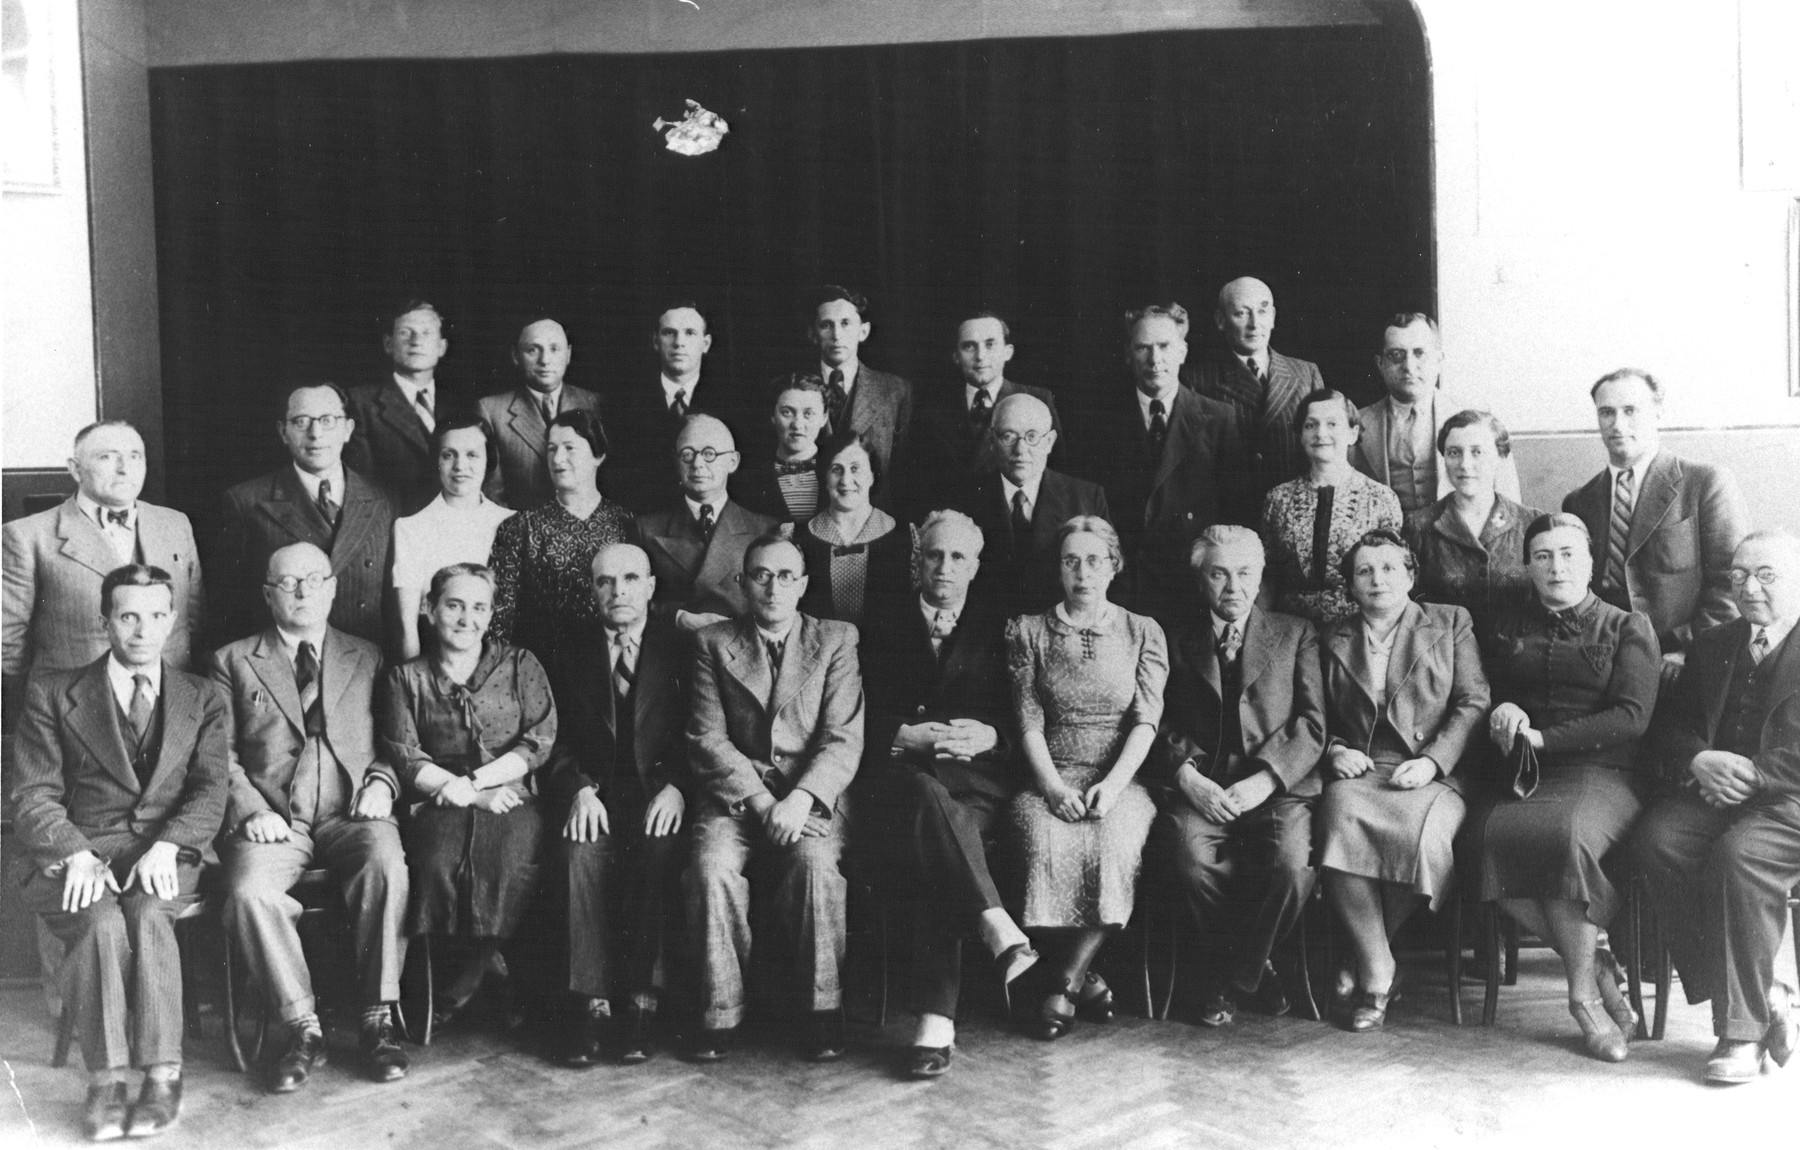 Group portrait of the faculty of the Hebrew Real Gymnasium in Kovno, Lithuania.  Seated in the center is the pricipal, front row (fifth from left) is the principal Dr. Kissin.  Standing in the top row on the far right is Shalom Tzvi Rachokovsky.